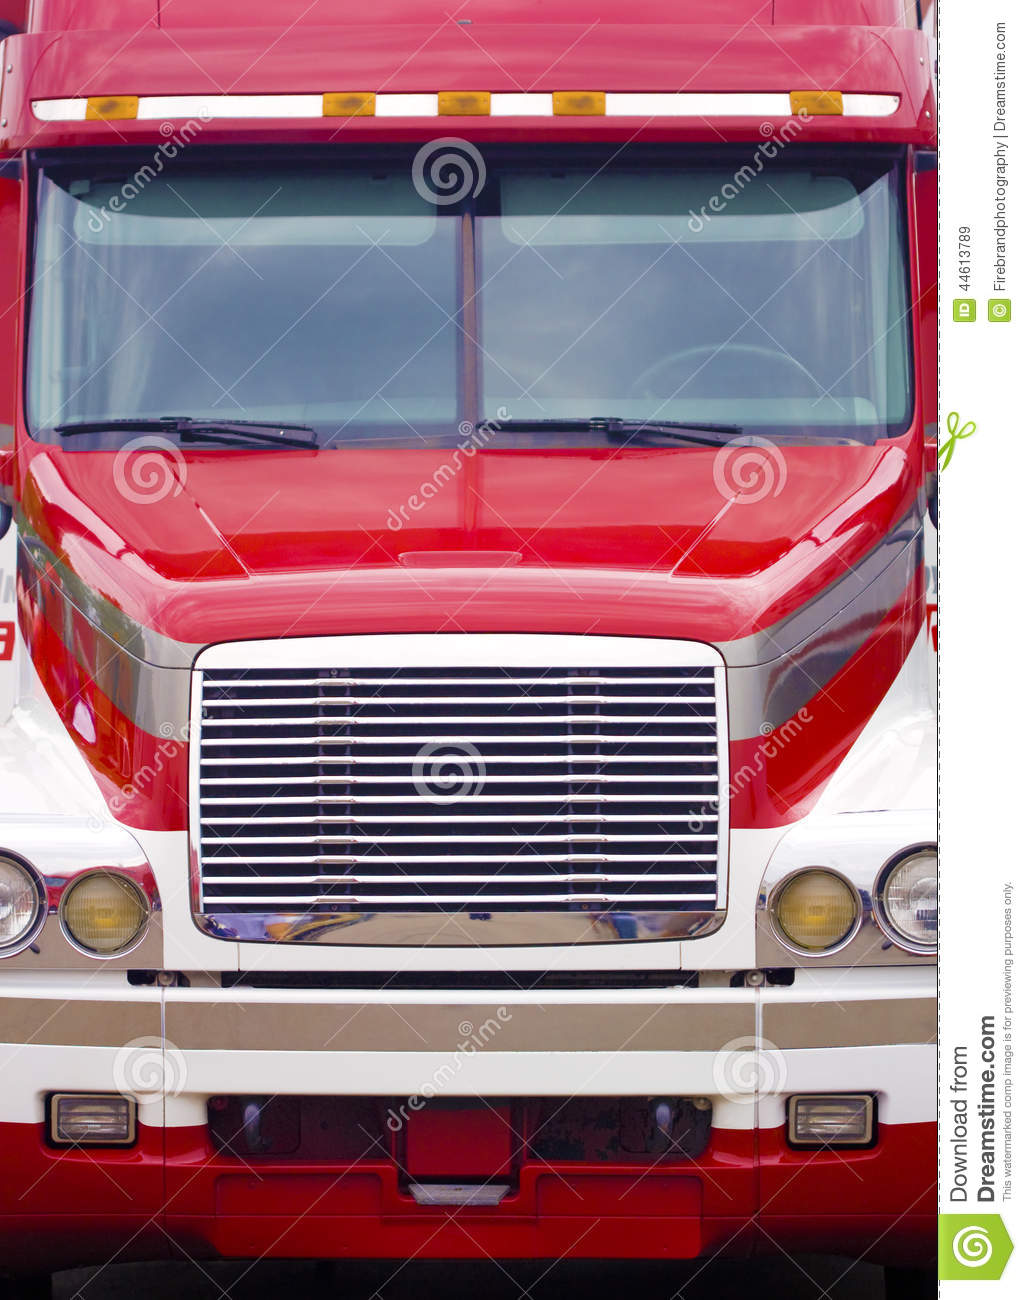 Tractor Trailer Head On : Tractor trailer truck head on stock image of